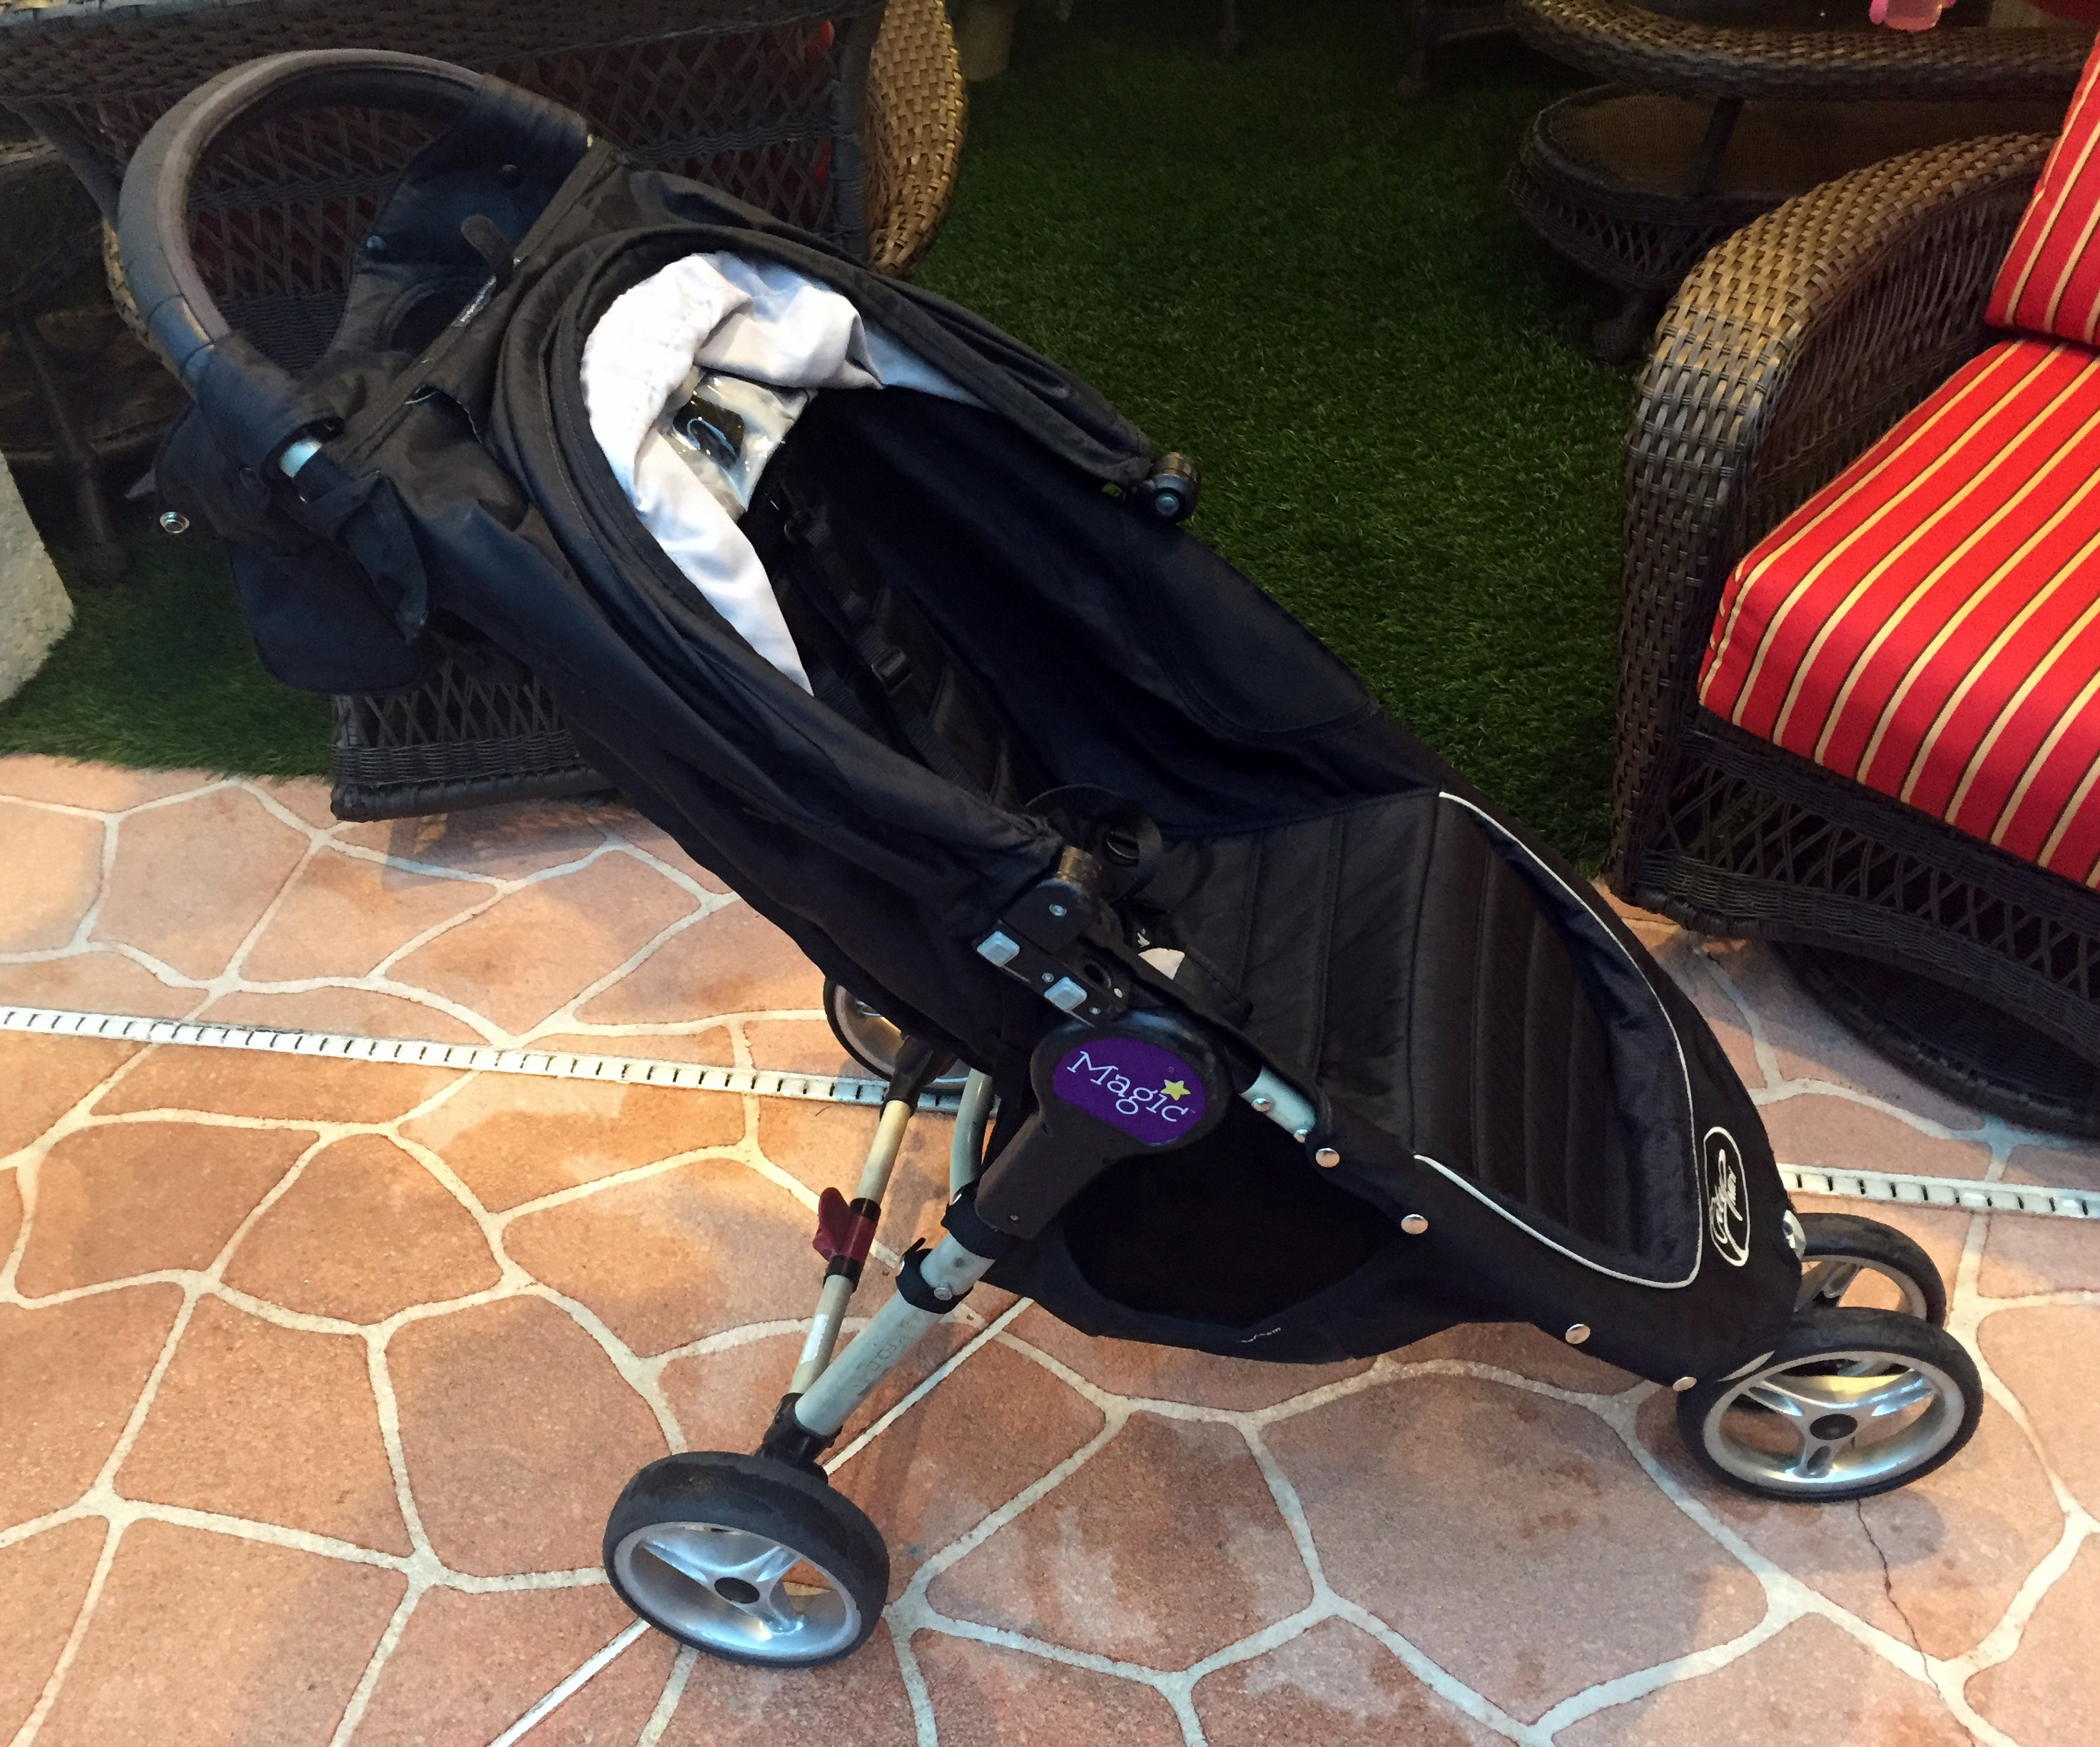 Stroller Rental Review Disney World Touringplans Com Blog